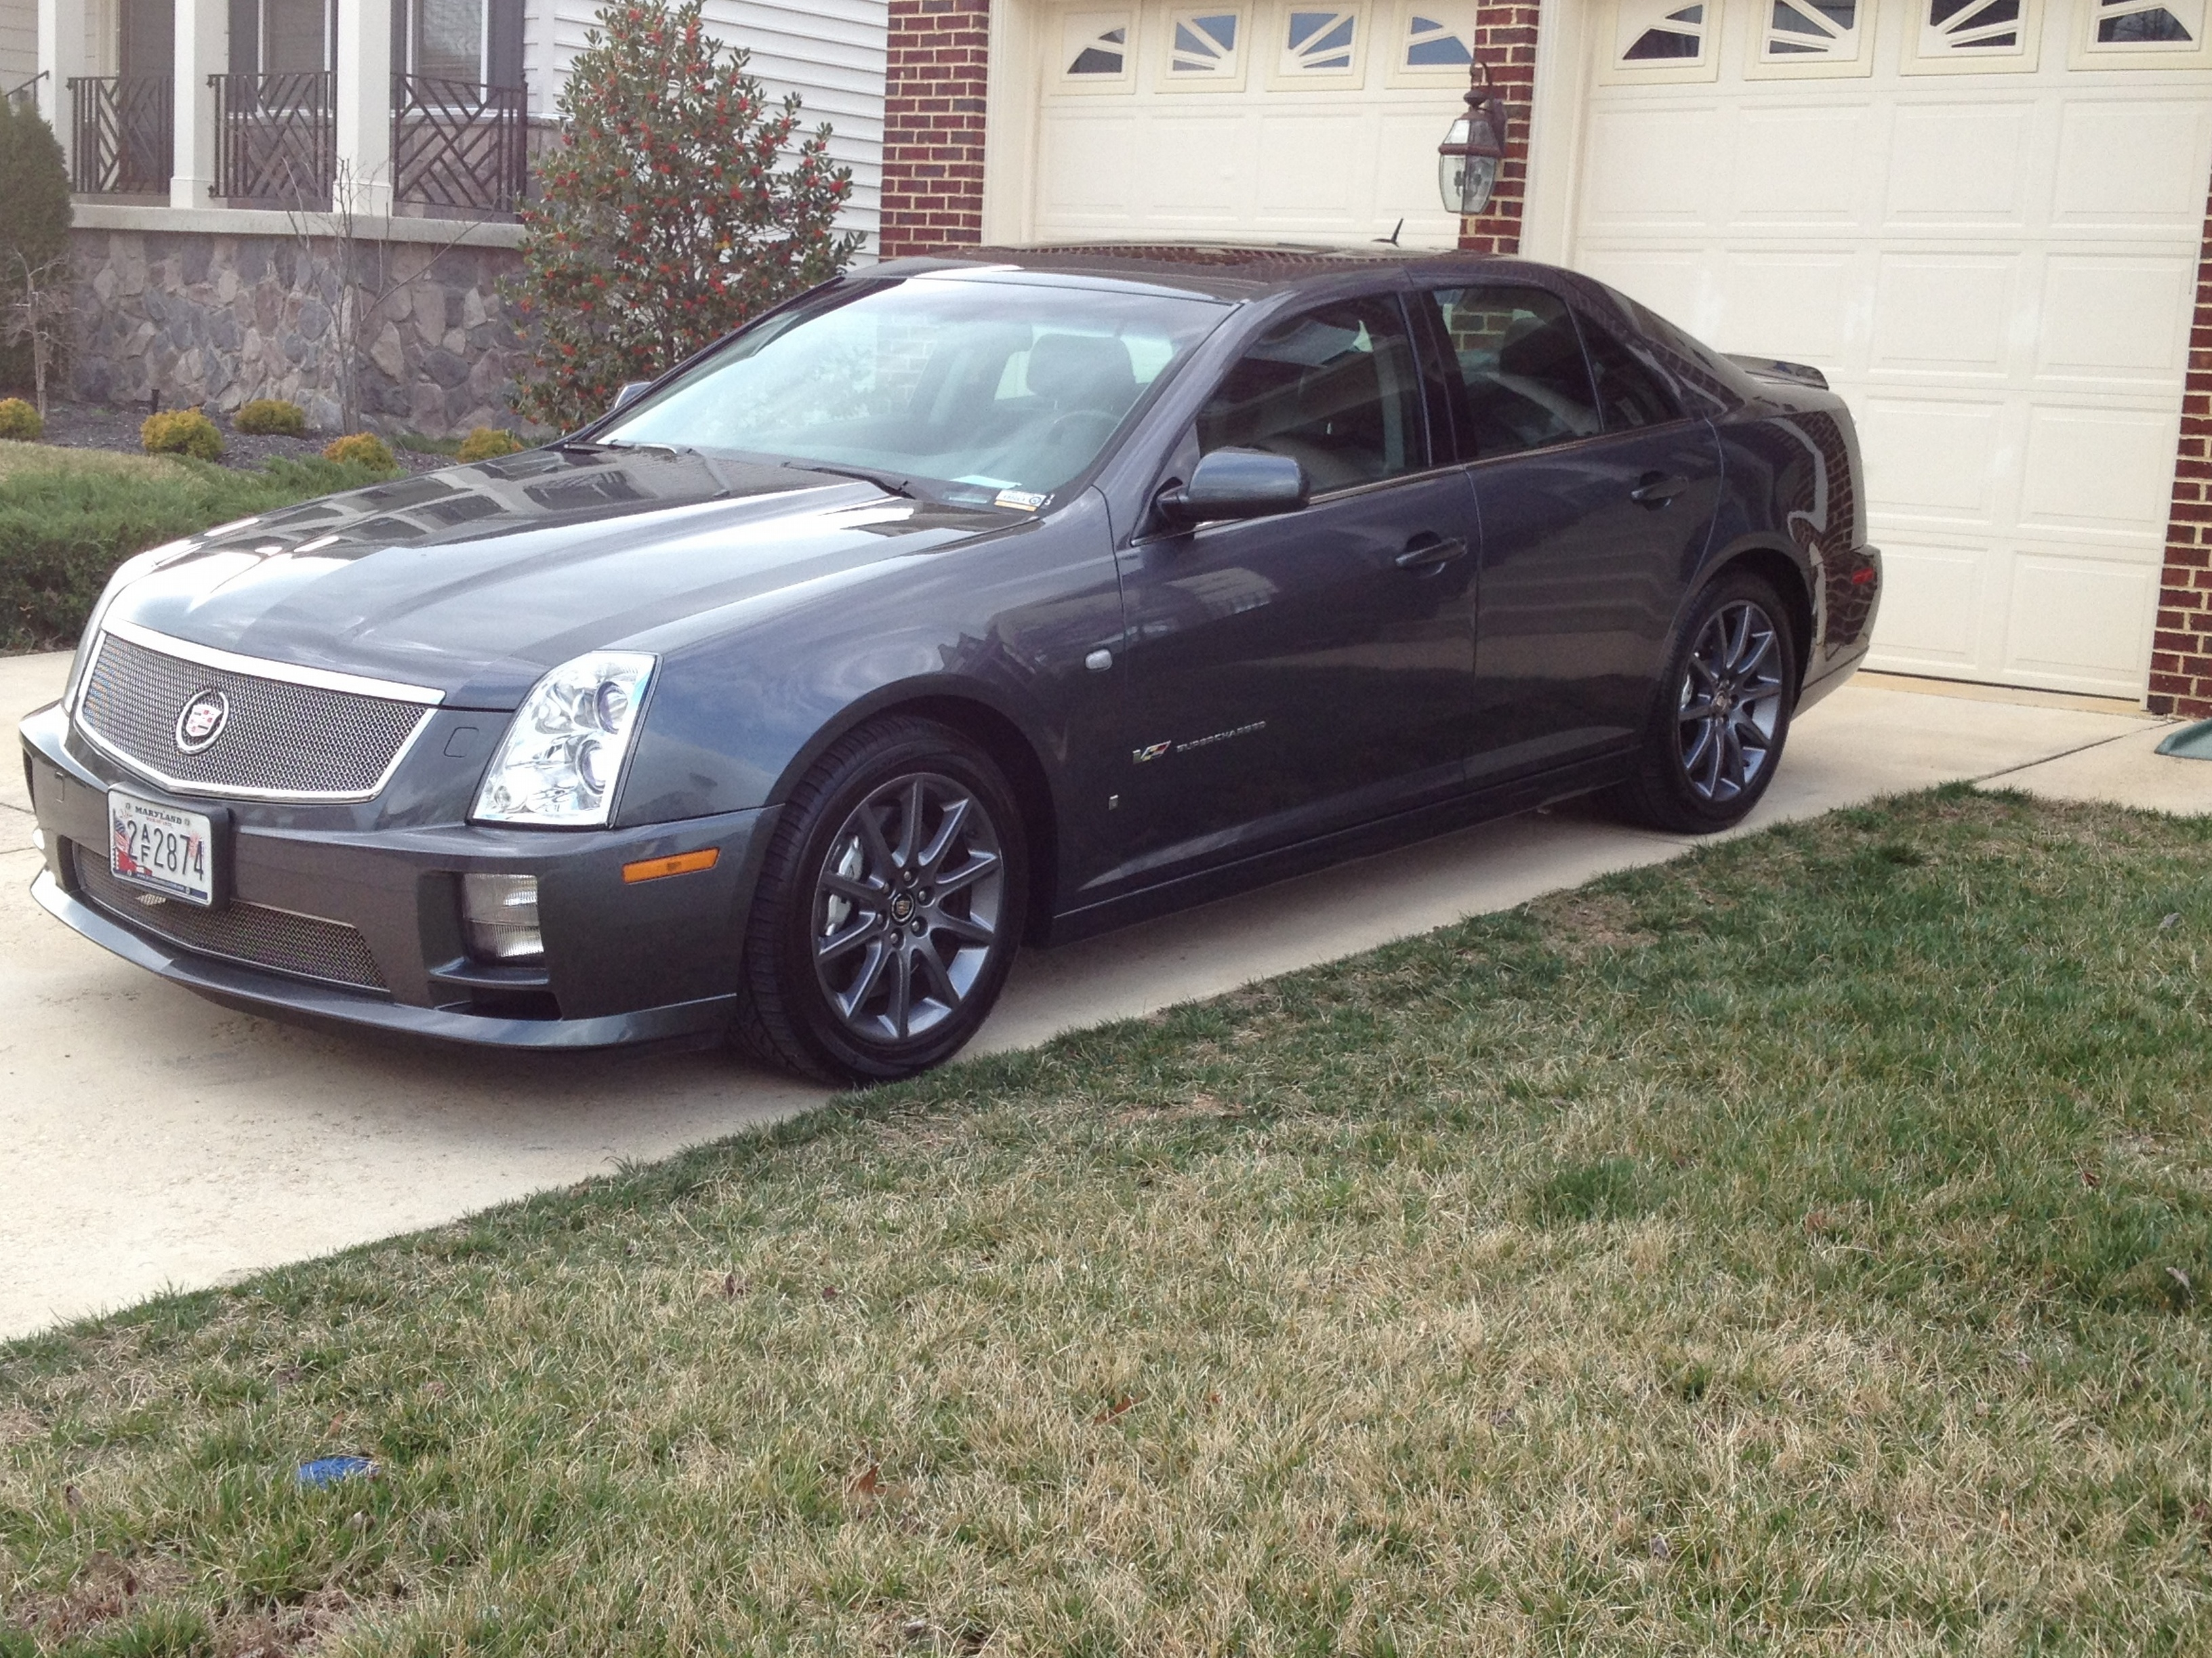 2007 cadillac sts page 2 view all 2007 cadillac sts at cardomain. Black Bedroom Furniture Sets. Home Design Ideas